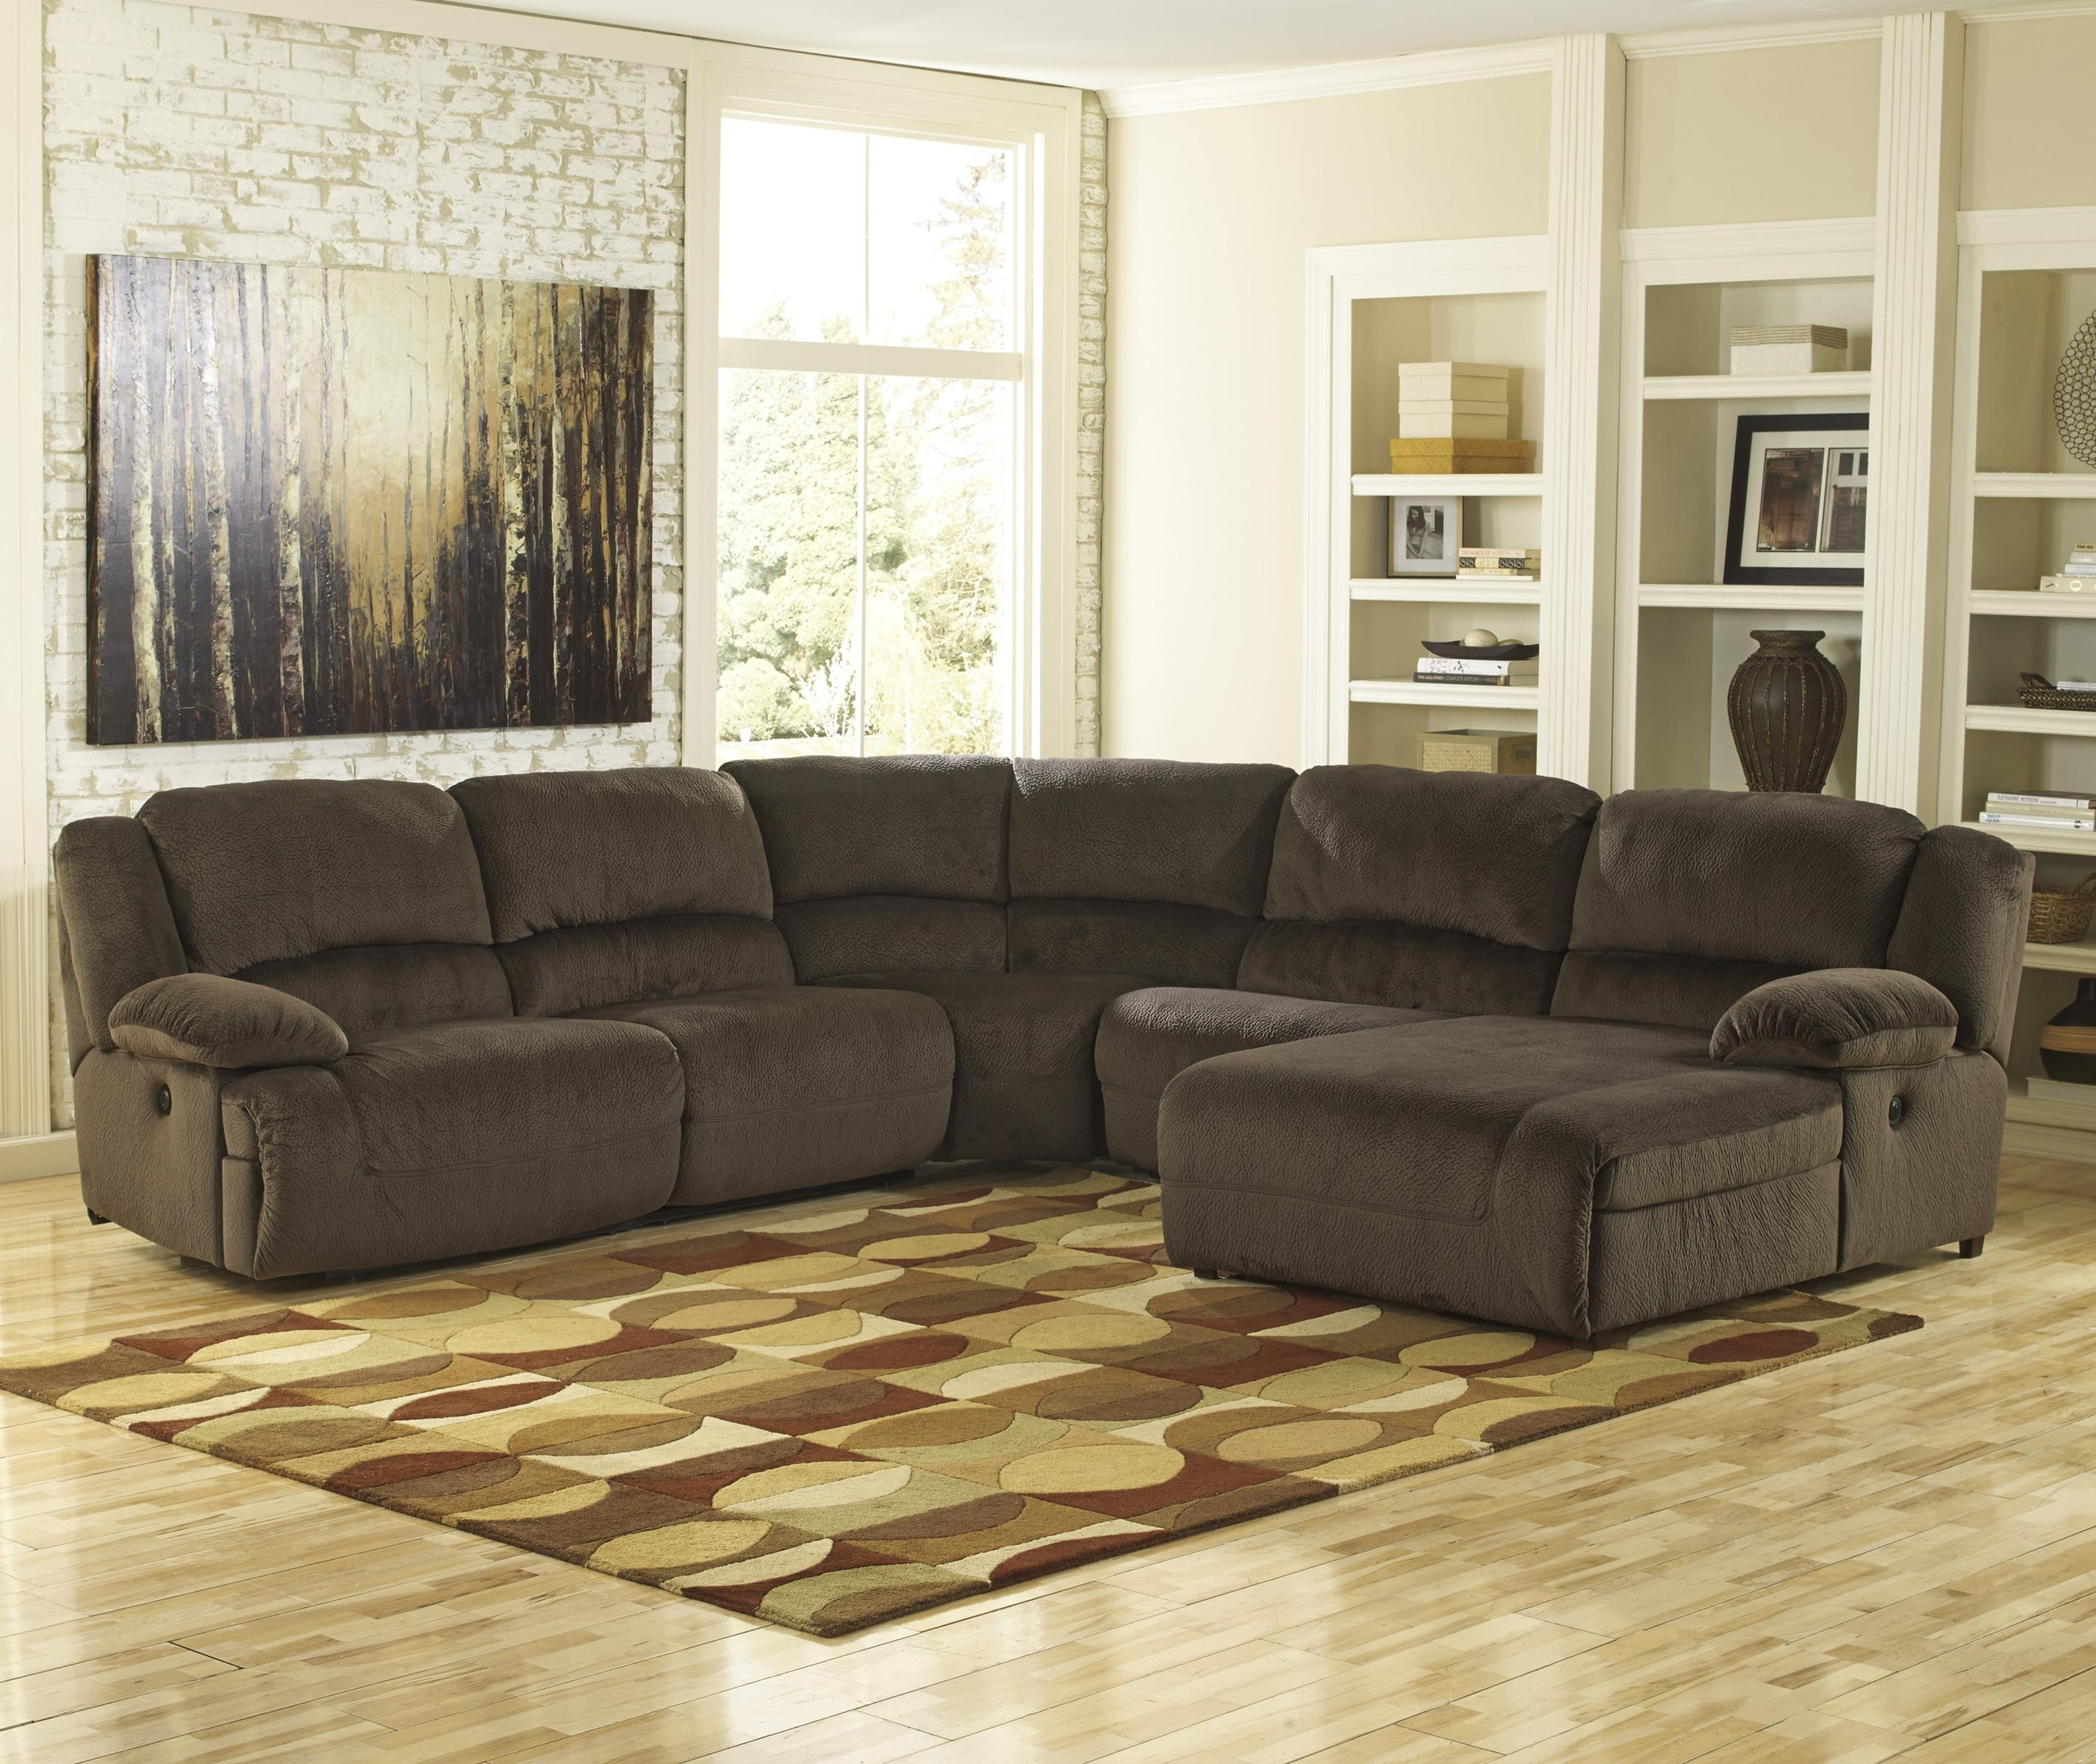 Ashley Sectional Sofa | Ashley Black Sectional Sofa | Ashley Brown regarding Sectional Sofas At Ashley (Image 7 of 15)